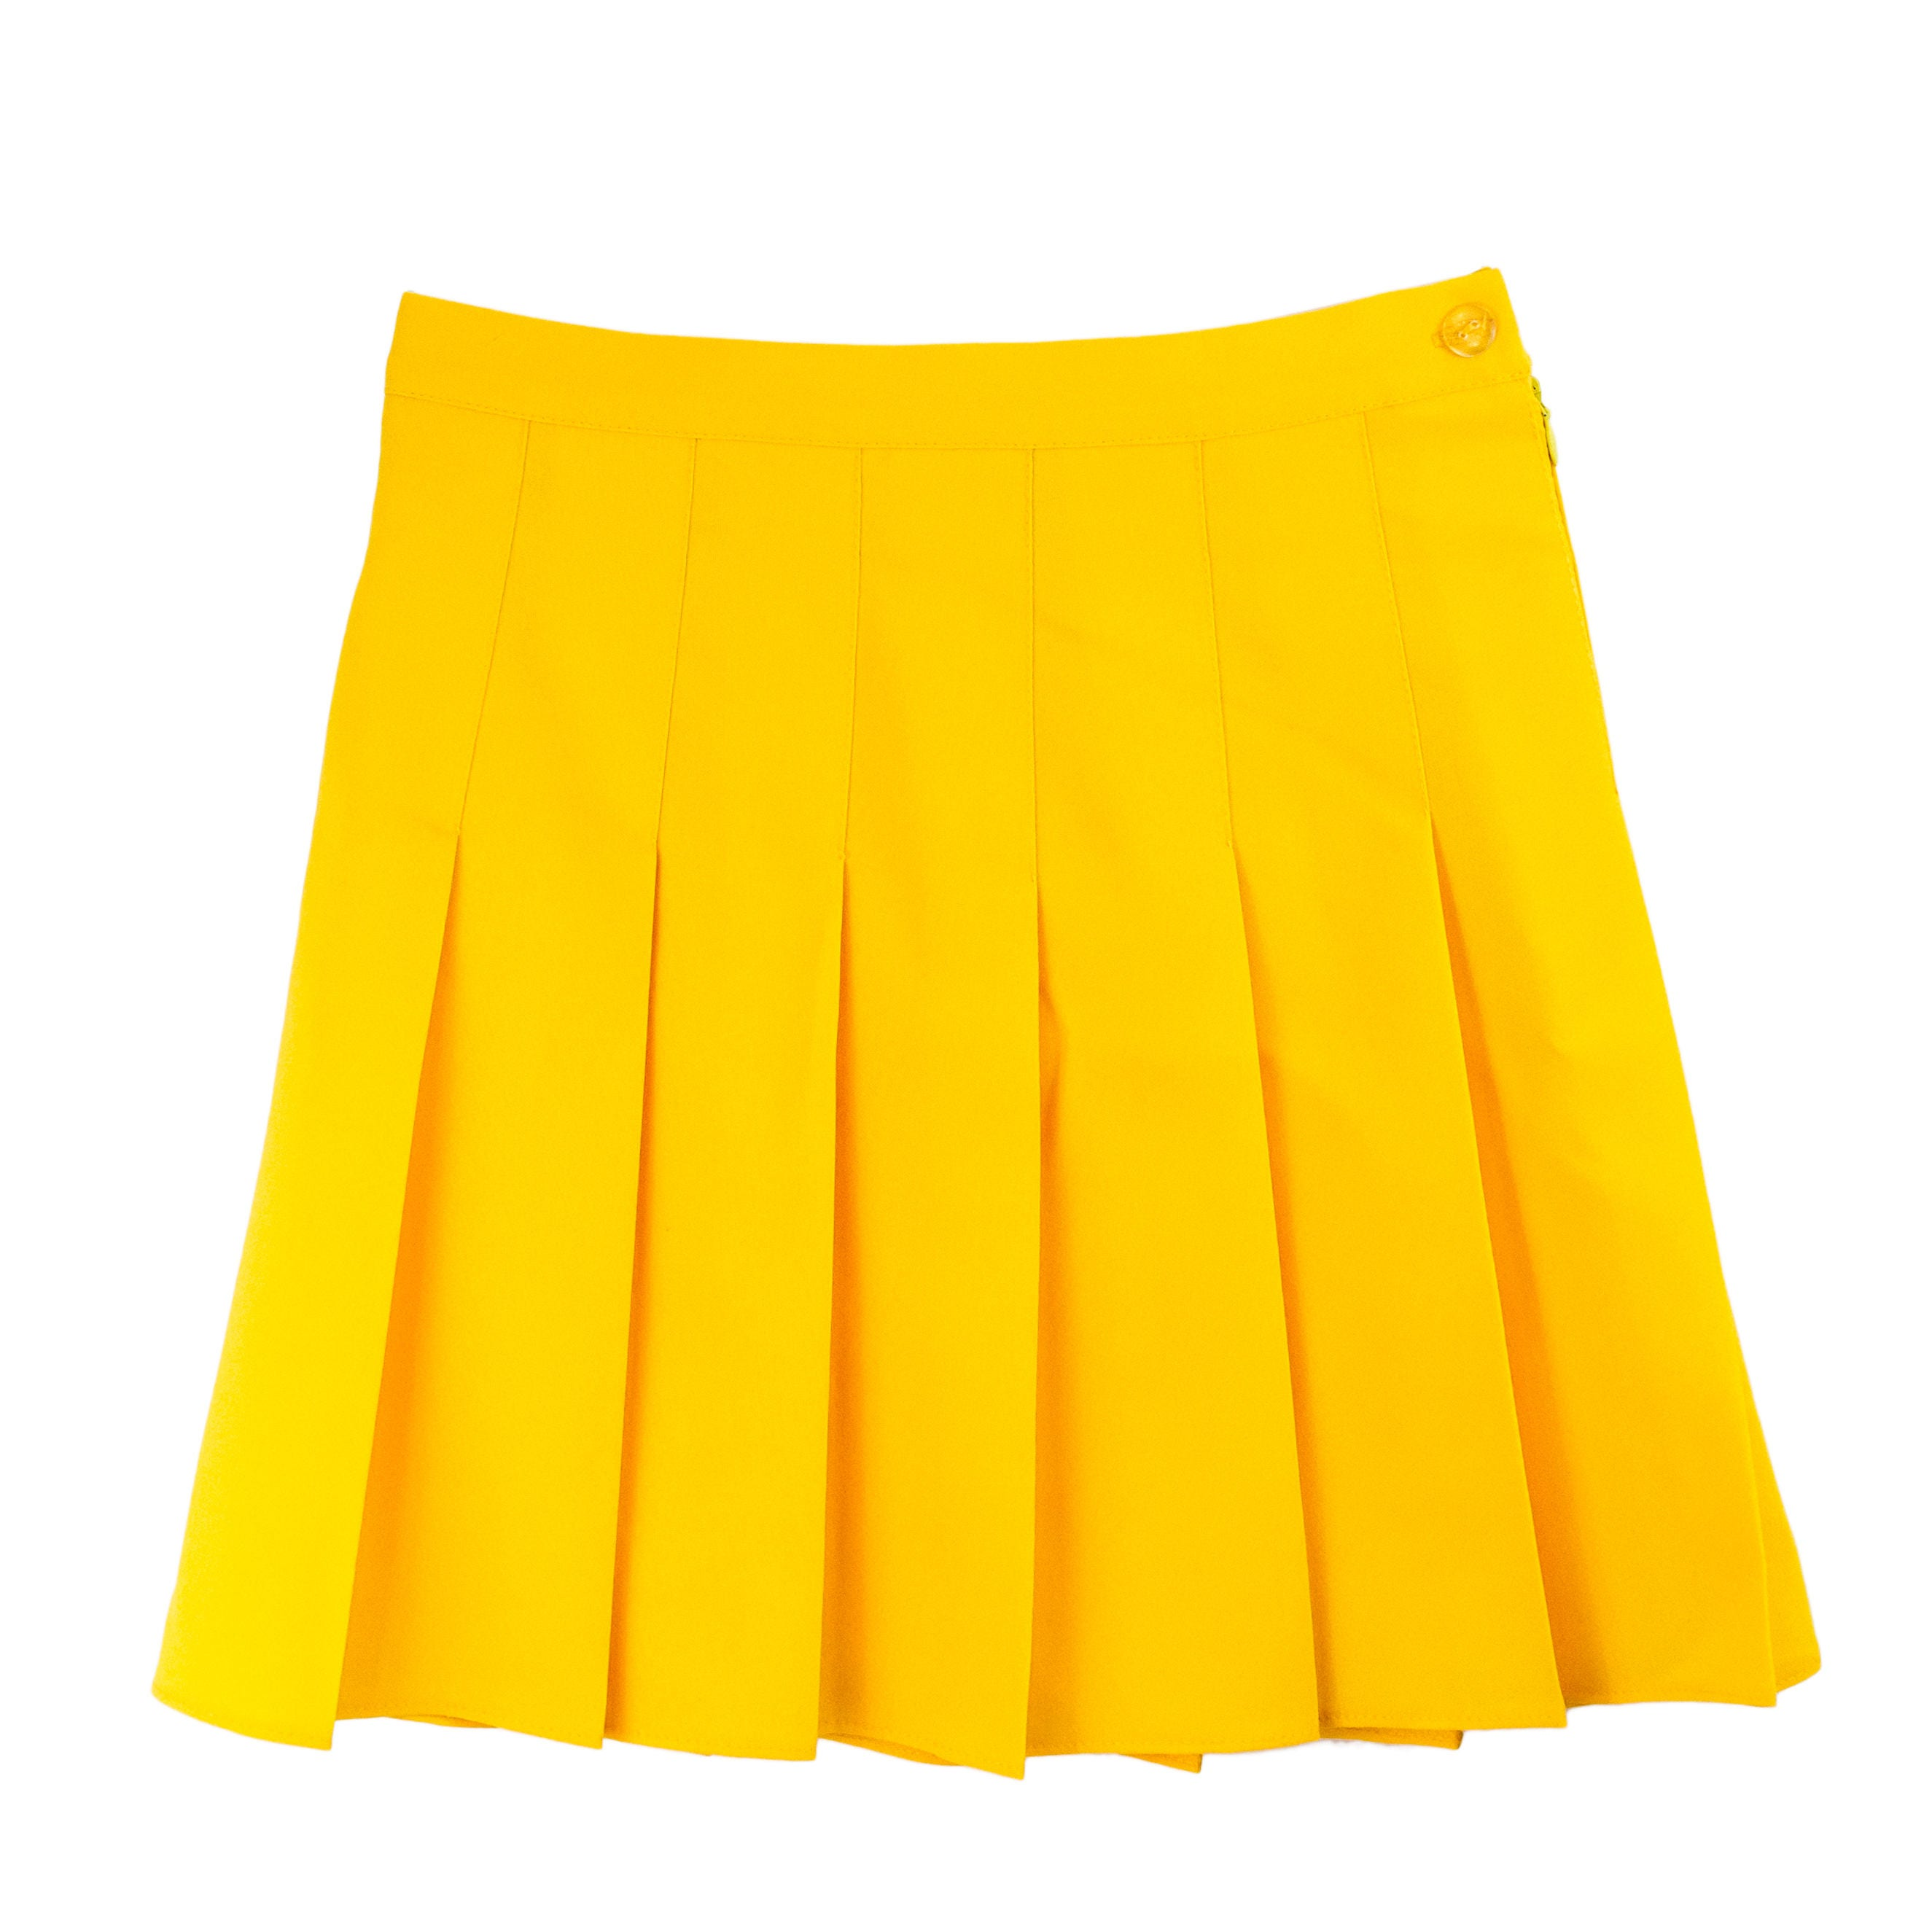 yellow tennis skirt pleated skirt american apparel grunge